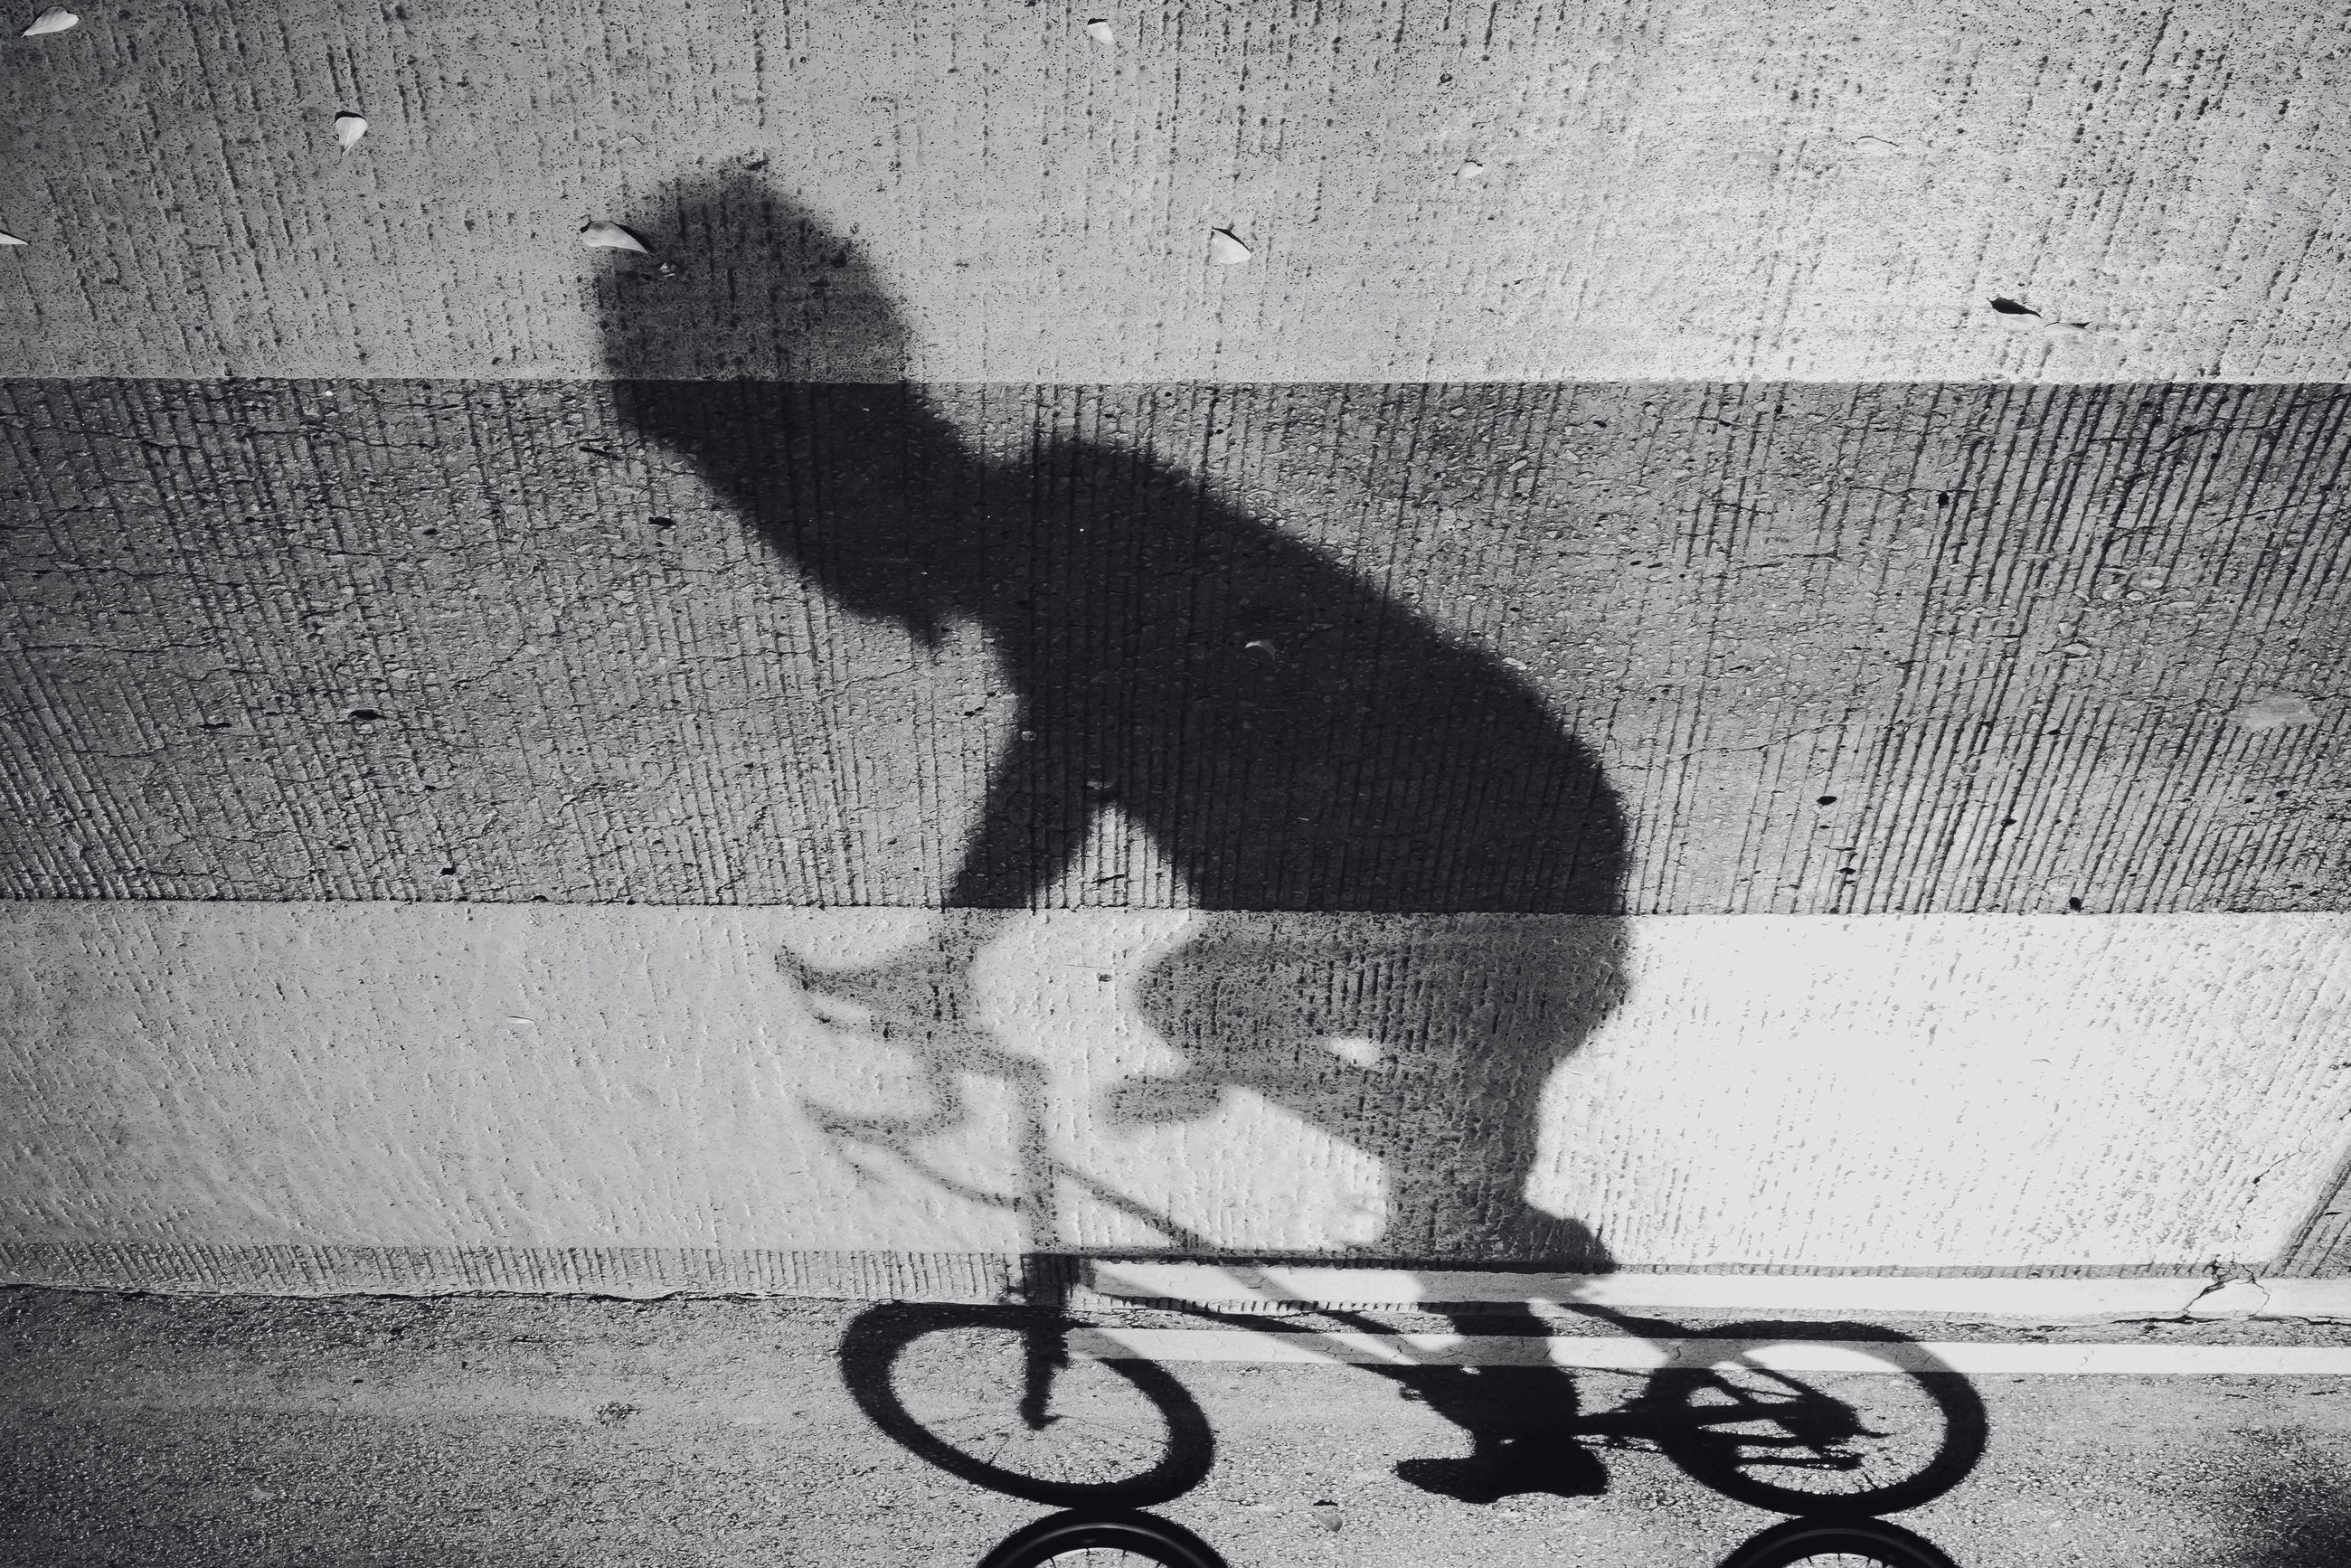 shadow, bicycle, sunlight, transportation, high angle view, real people, city, street, one person, day, low section, lifestyles, nature, focus on shadow, footpath, outdoors, leisure activity, riding, unrecognizable person, flooring, paving stone